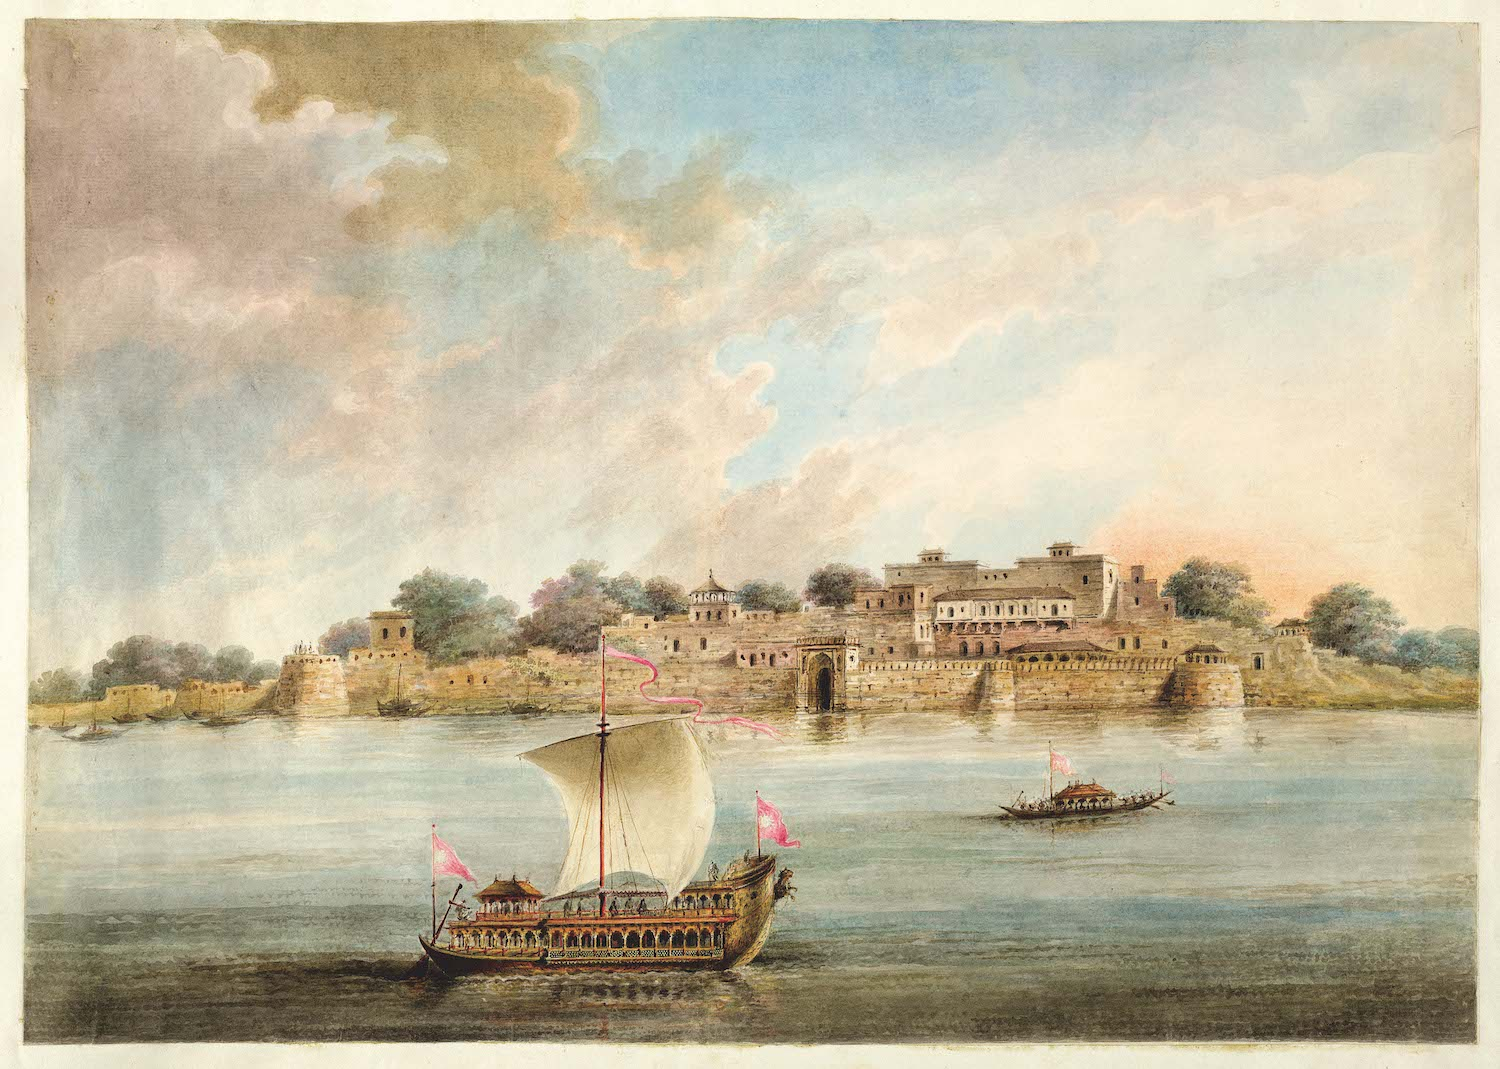 The Raja of Benares's palace at Ramnagar, with his state boat on the river.